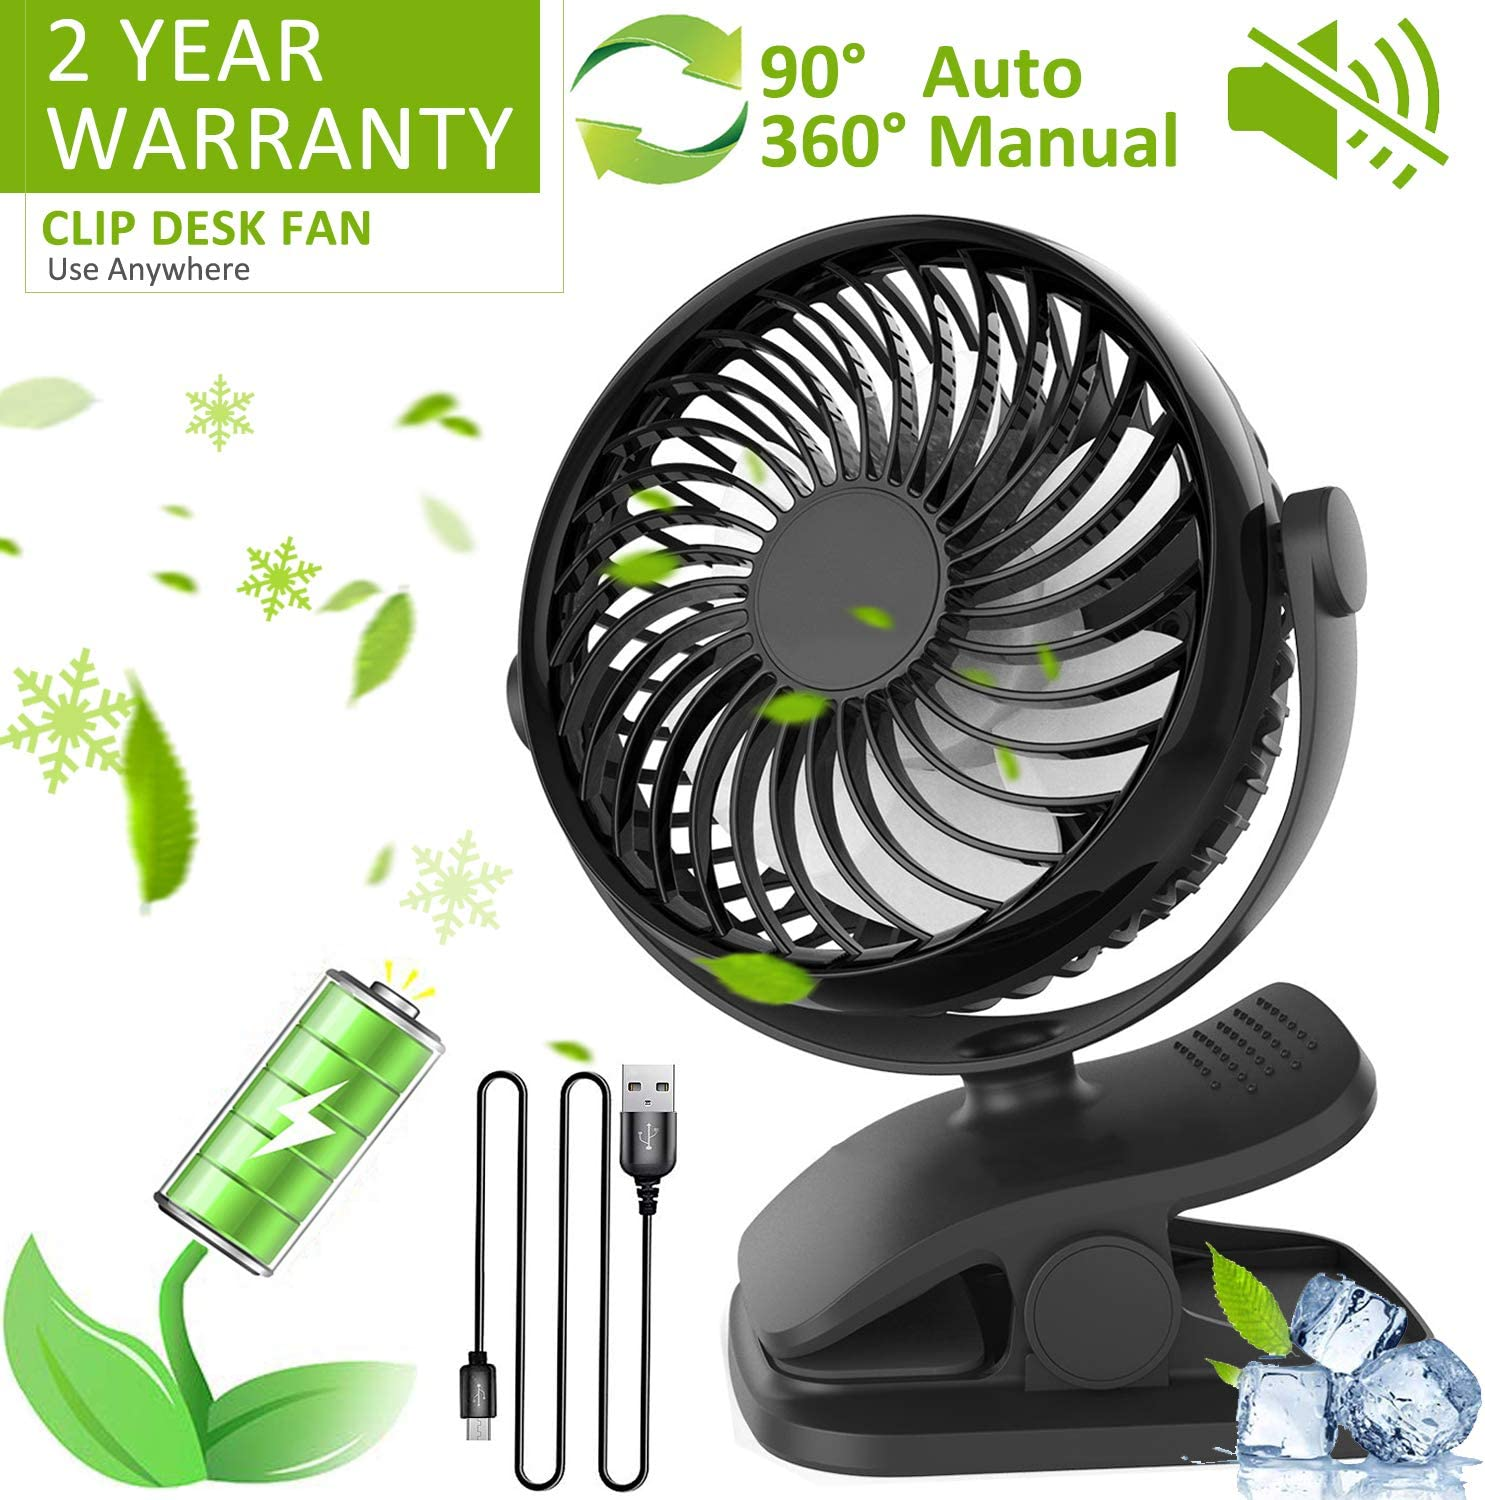 FURBB Stroller Fan Clip On Desk Fan 2200mAh Rechargeable Battery Operated 360 Rotation 3 Adjustable Speeds USB Portable Personal Mini Fan for Baby Stroller, Office, Home, Travel, Camping, Gym Black